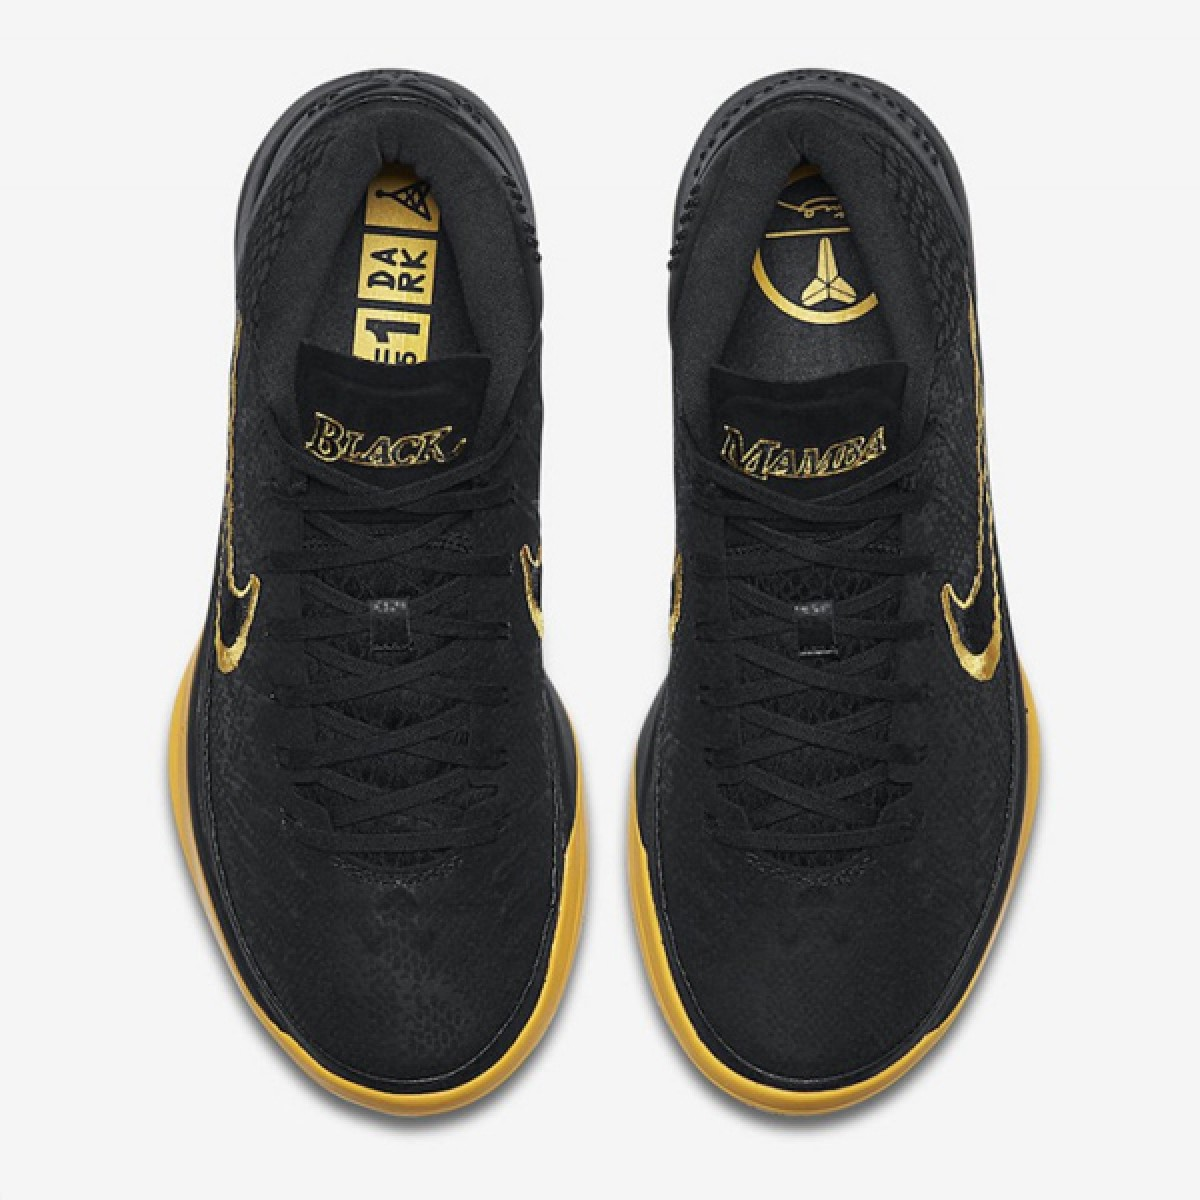 e2ddca485351 Buy Nike Kobe AD Mid  Black Mamba  Basketball shoes   sneakers